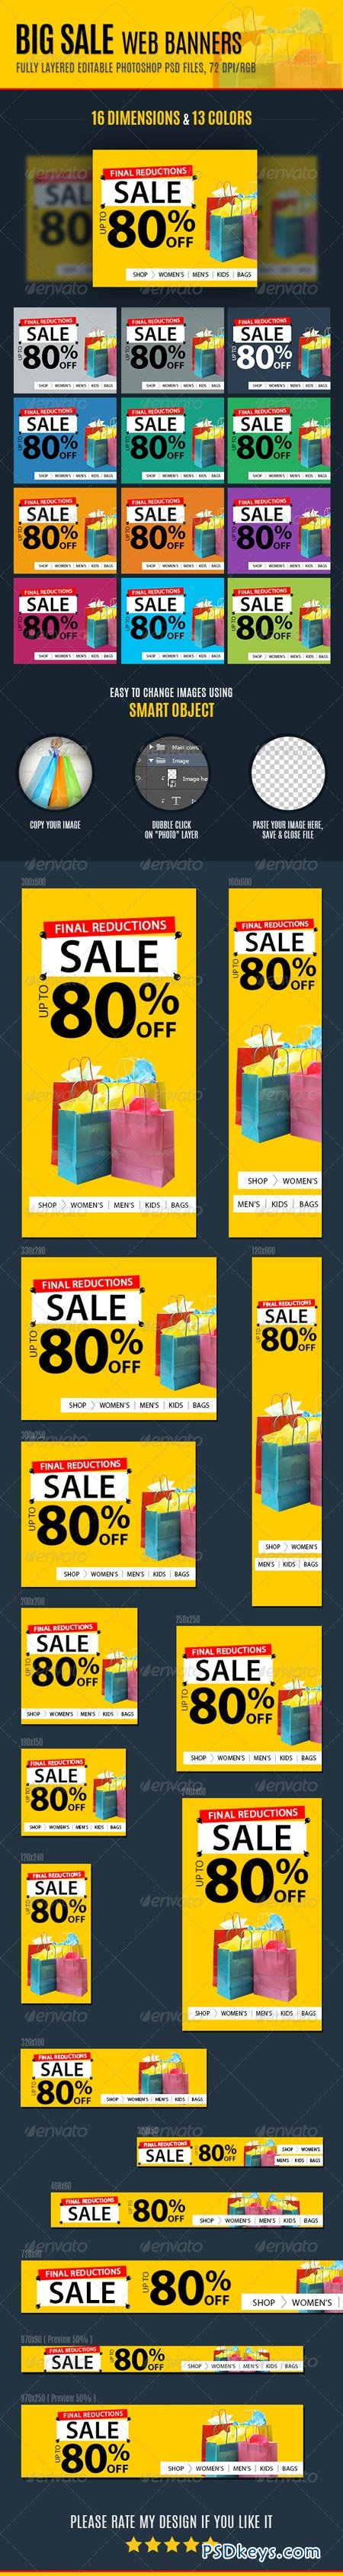 Big Sale Web Banners 7039924